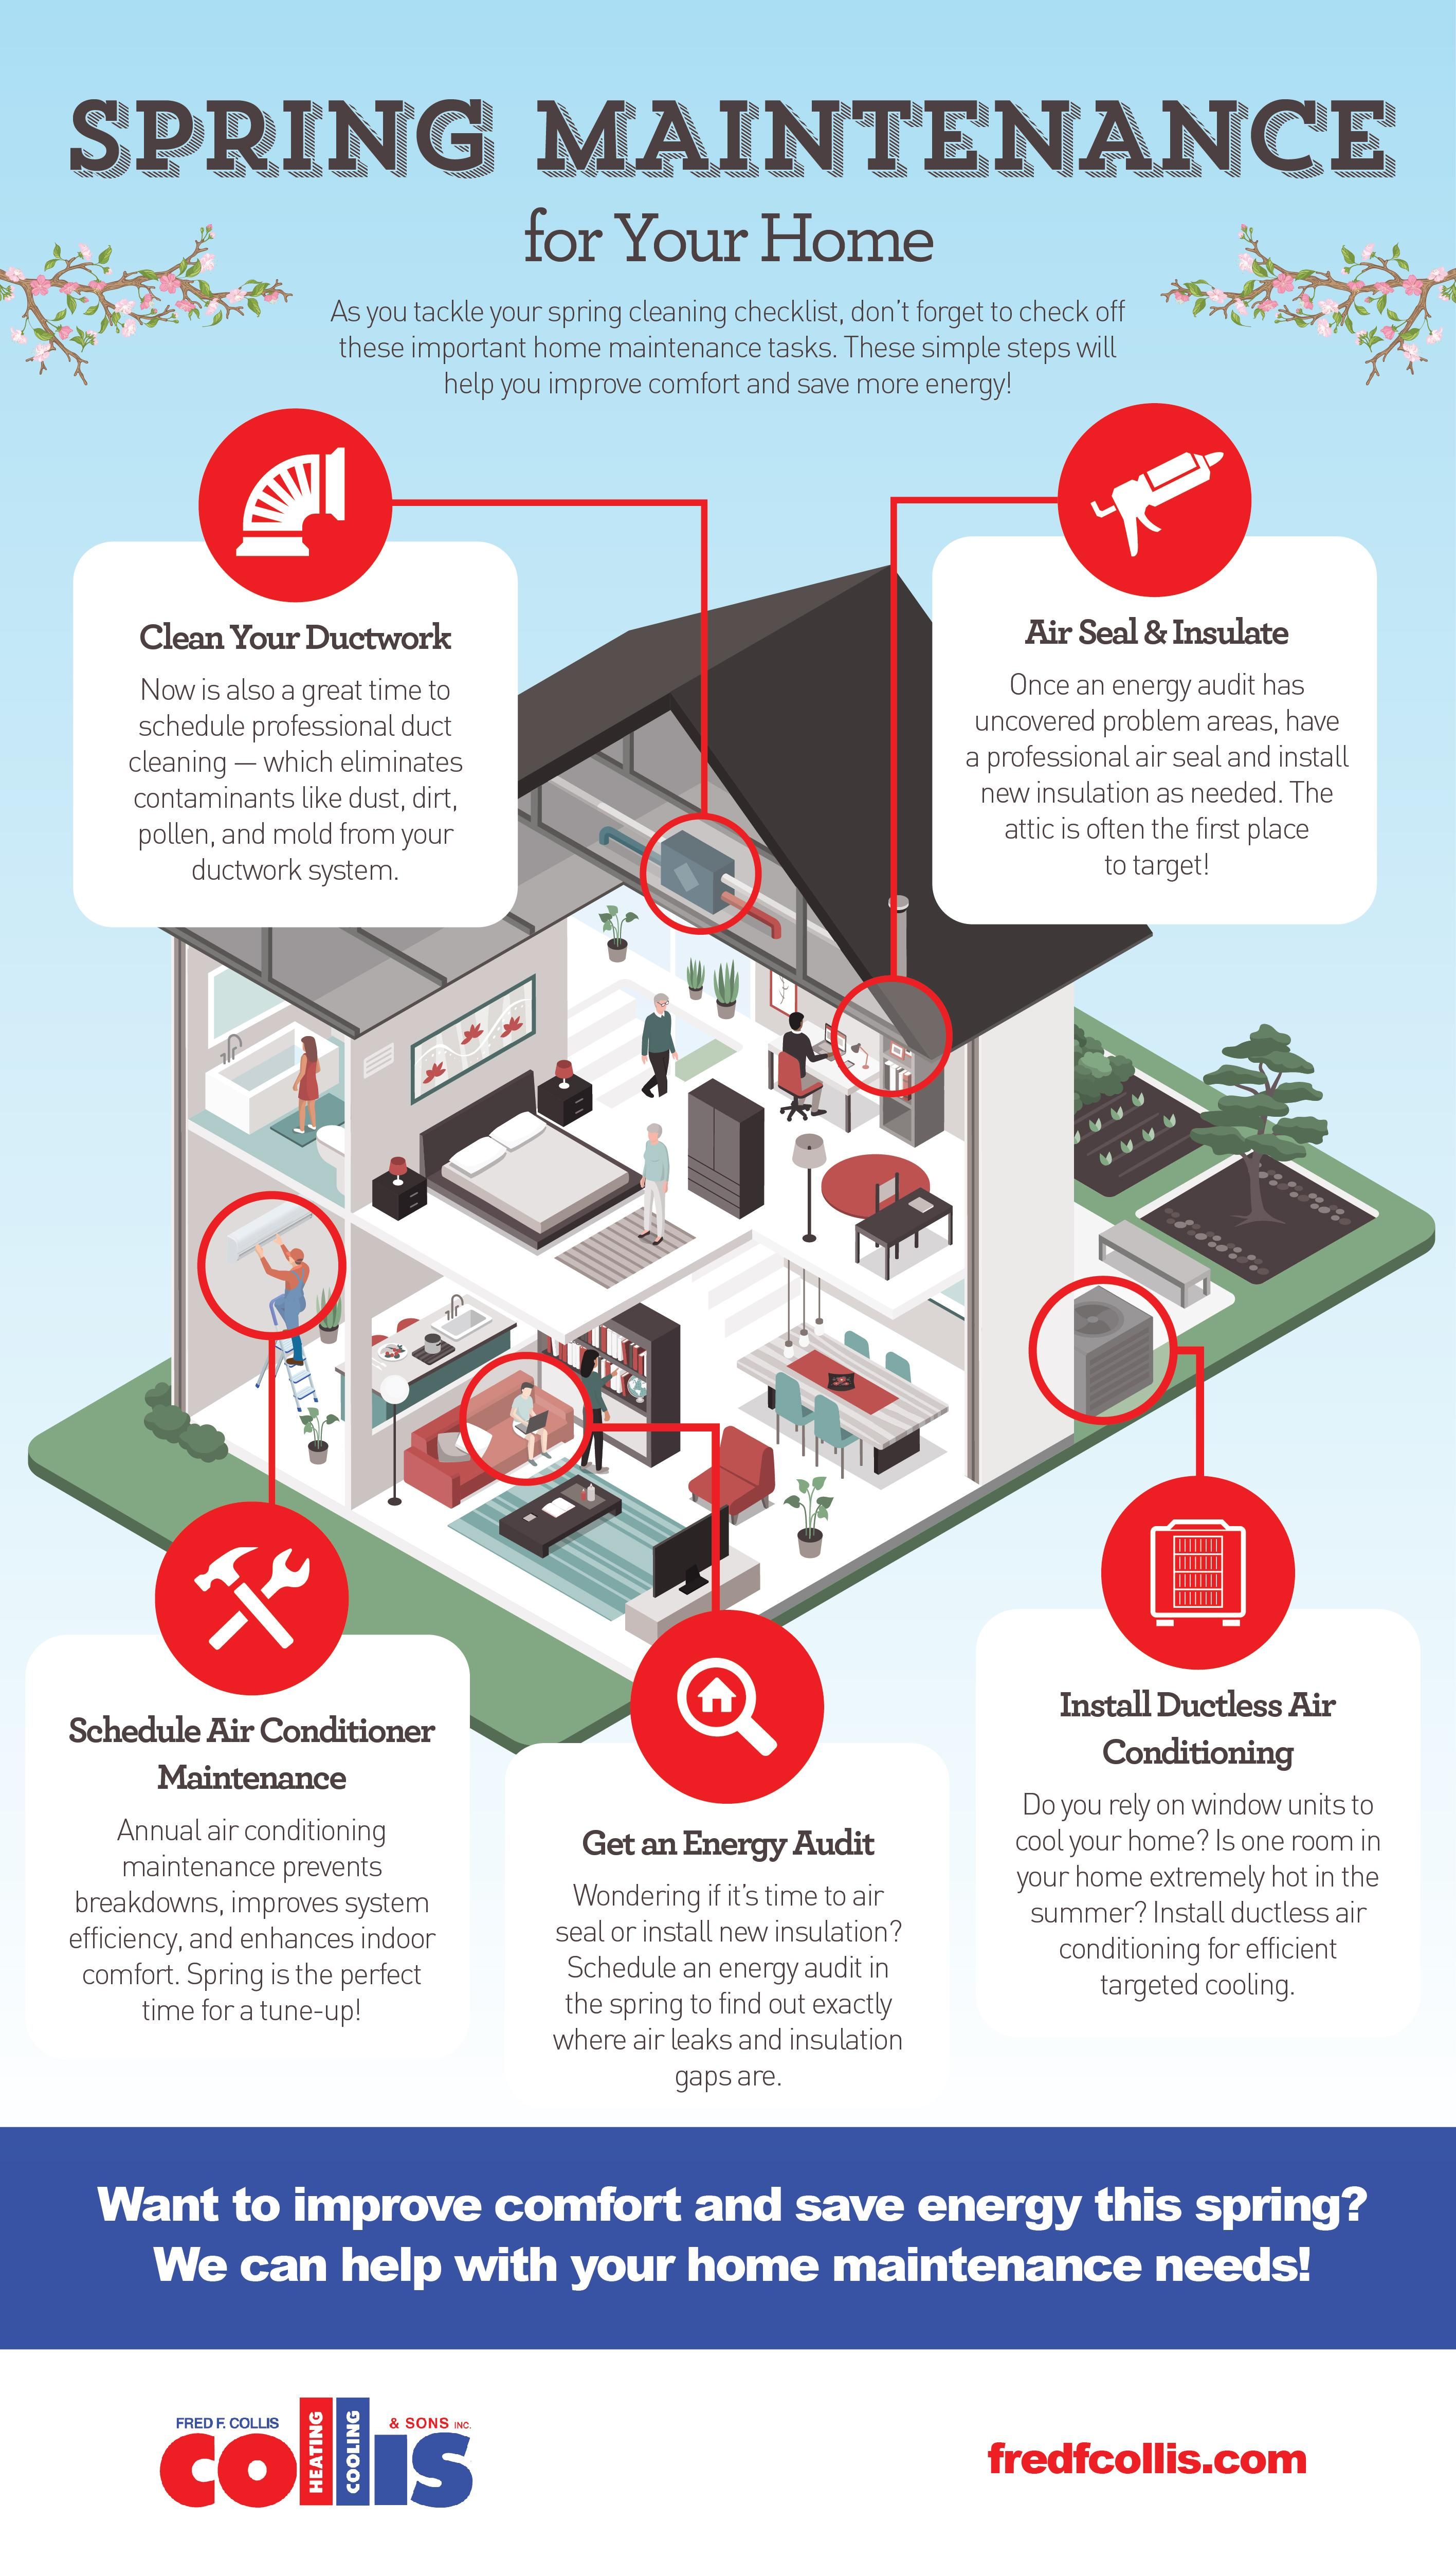 spring checklist infographic fred f collis